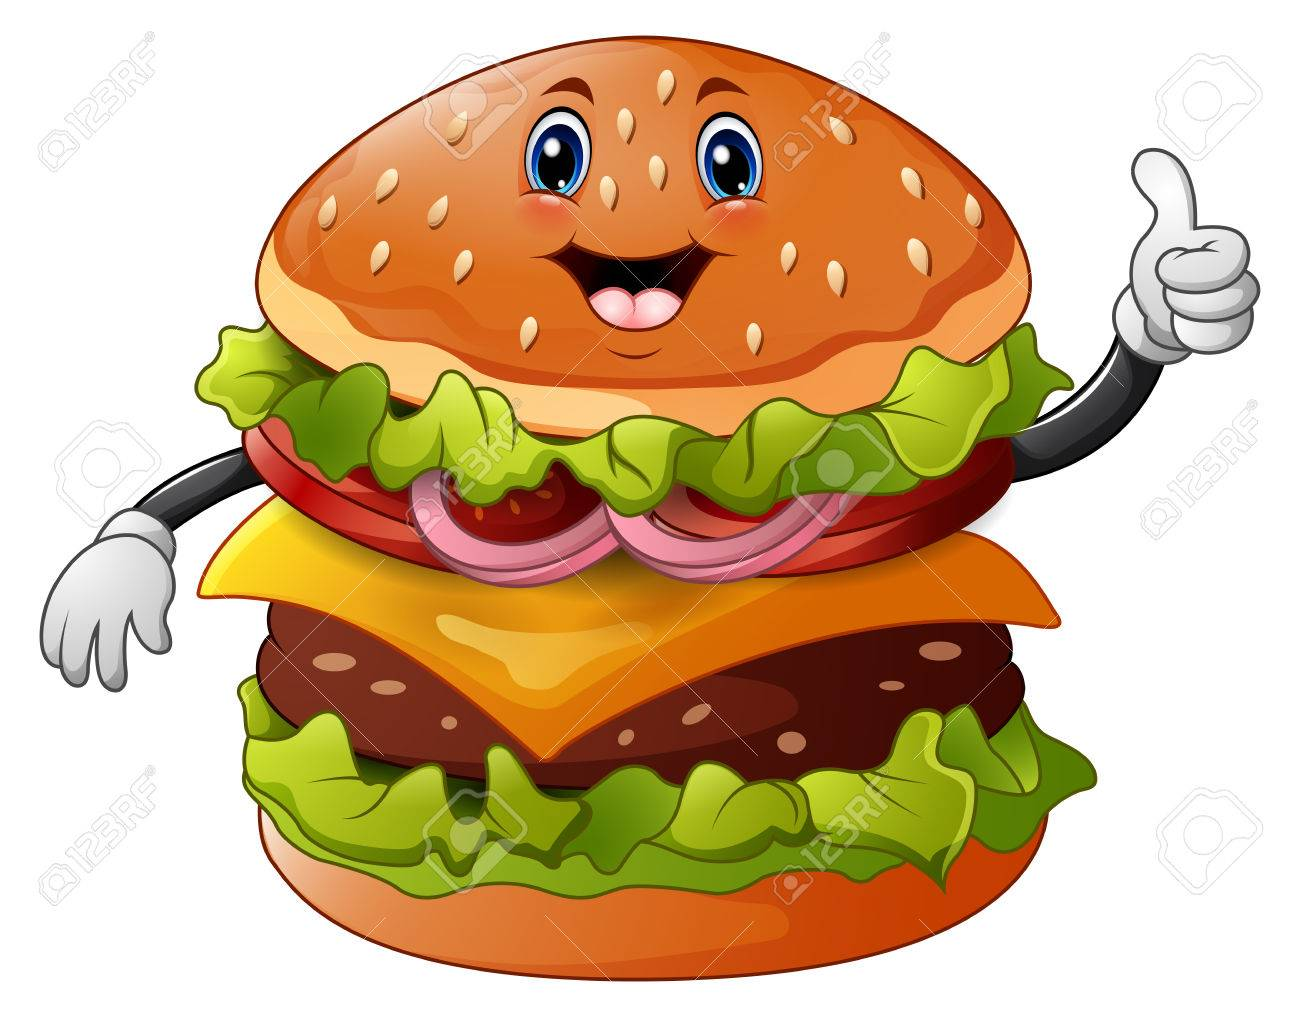 Image result for CARTOON burger